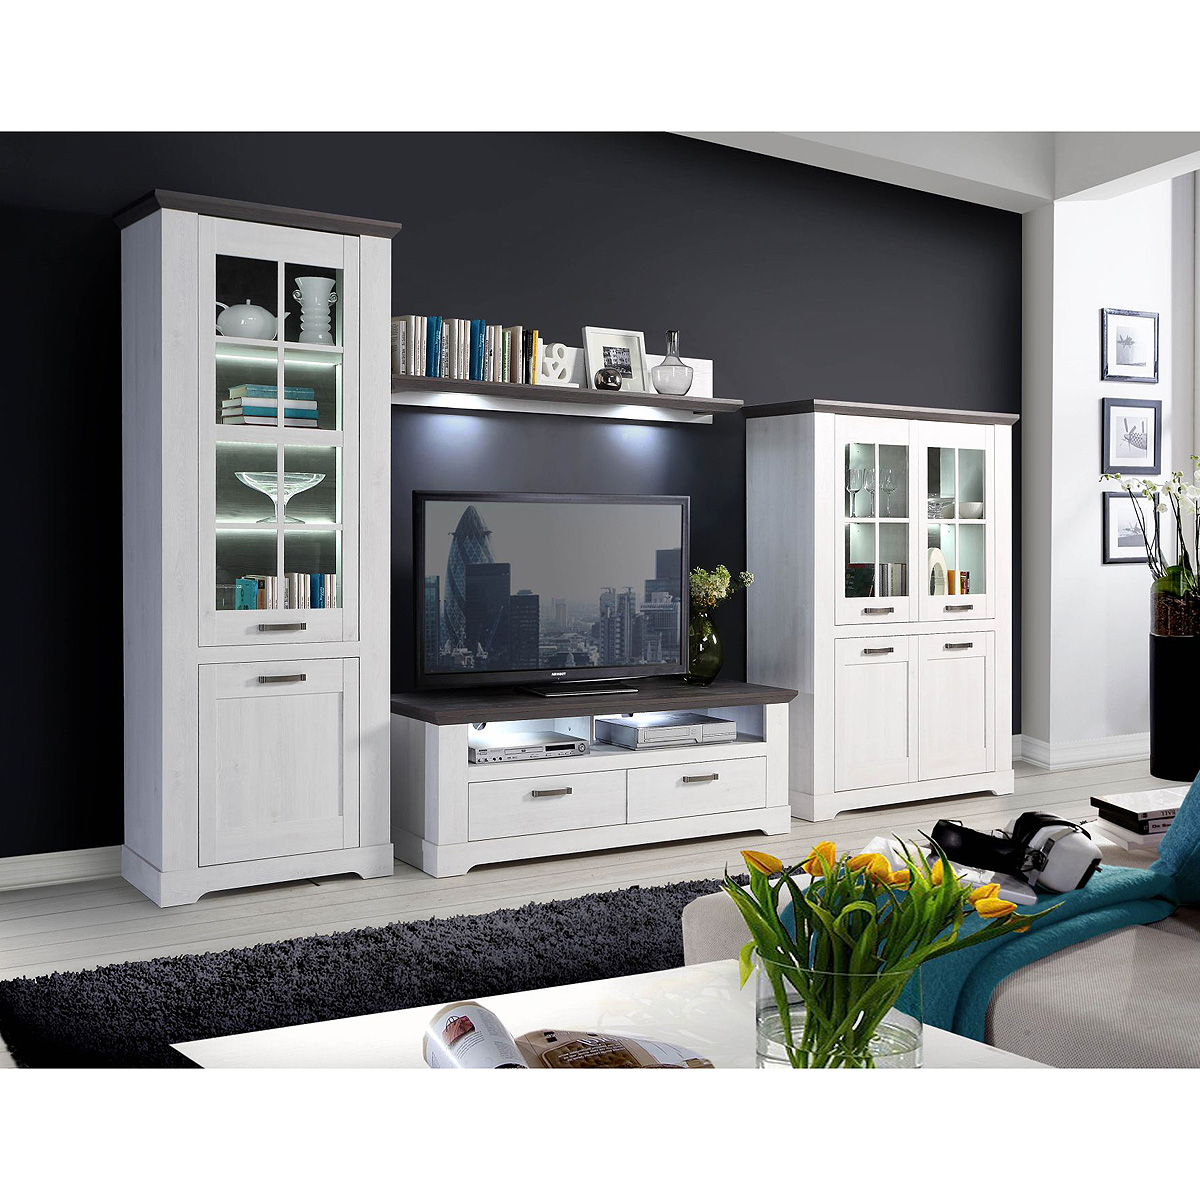 wohnwand garlando anbauwand wohnzimmer wohnkombi schneeeiche wei und pinie grau ebay. Black Bedroom Furniture Sets. Home Design Ideas